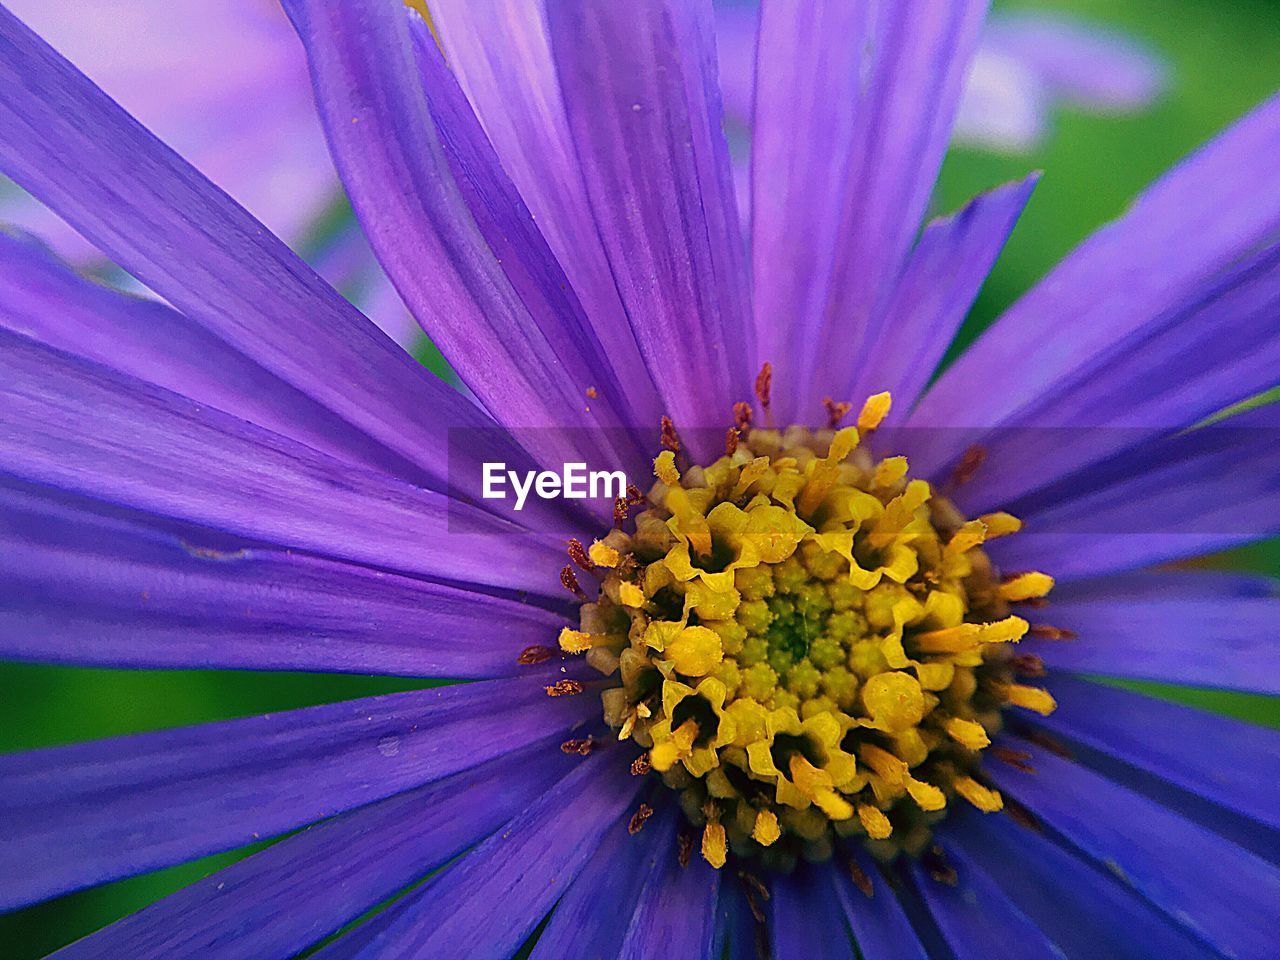 flower, flowering plant, beauty in nature, freshness, petal, vulnerability, flower head, fragility, growth, plant, inflorescence, close-up, pollen, purple, nature, yellow, no people, full frame, focus on foreground, springtime, gazania